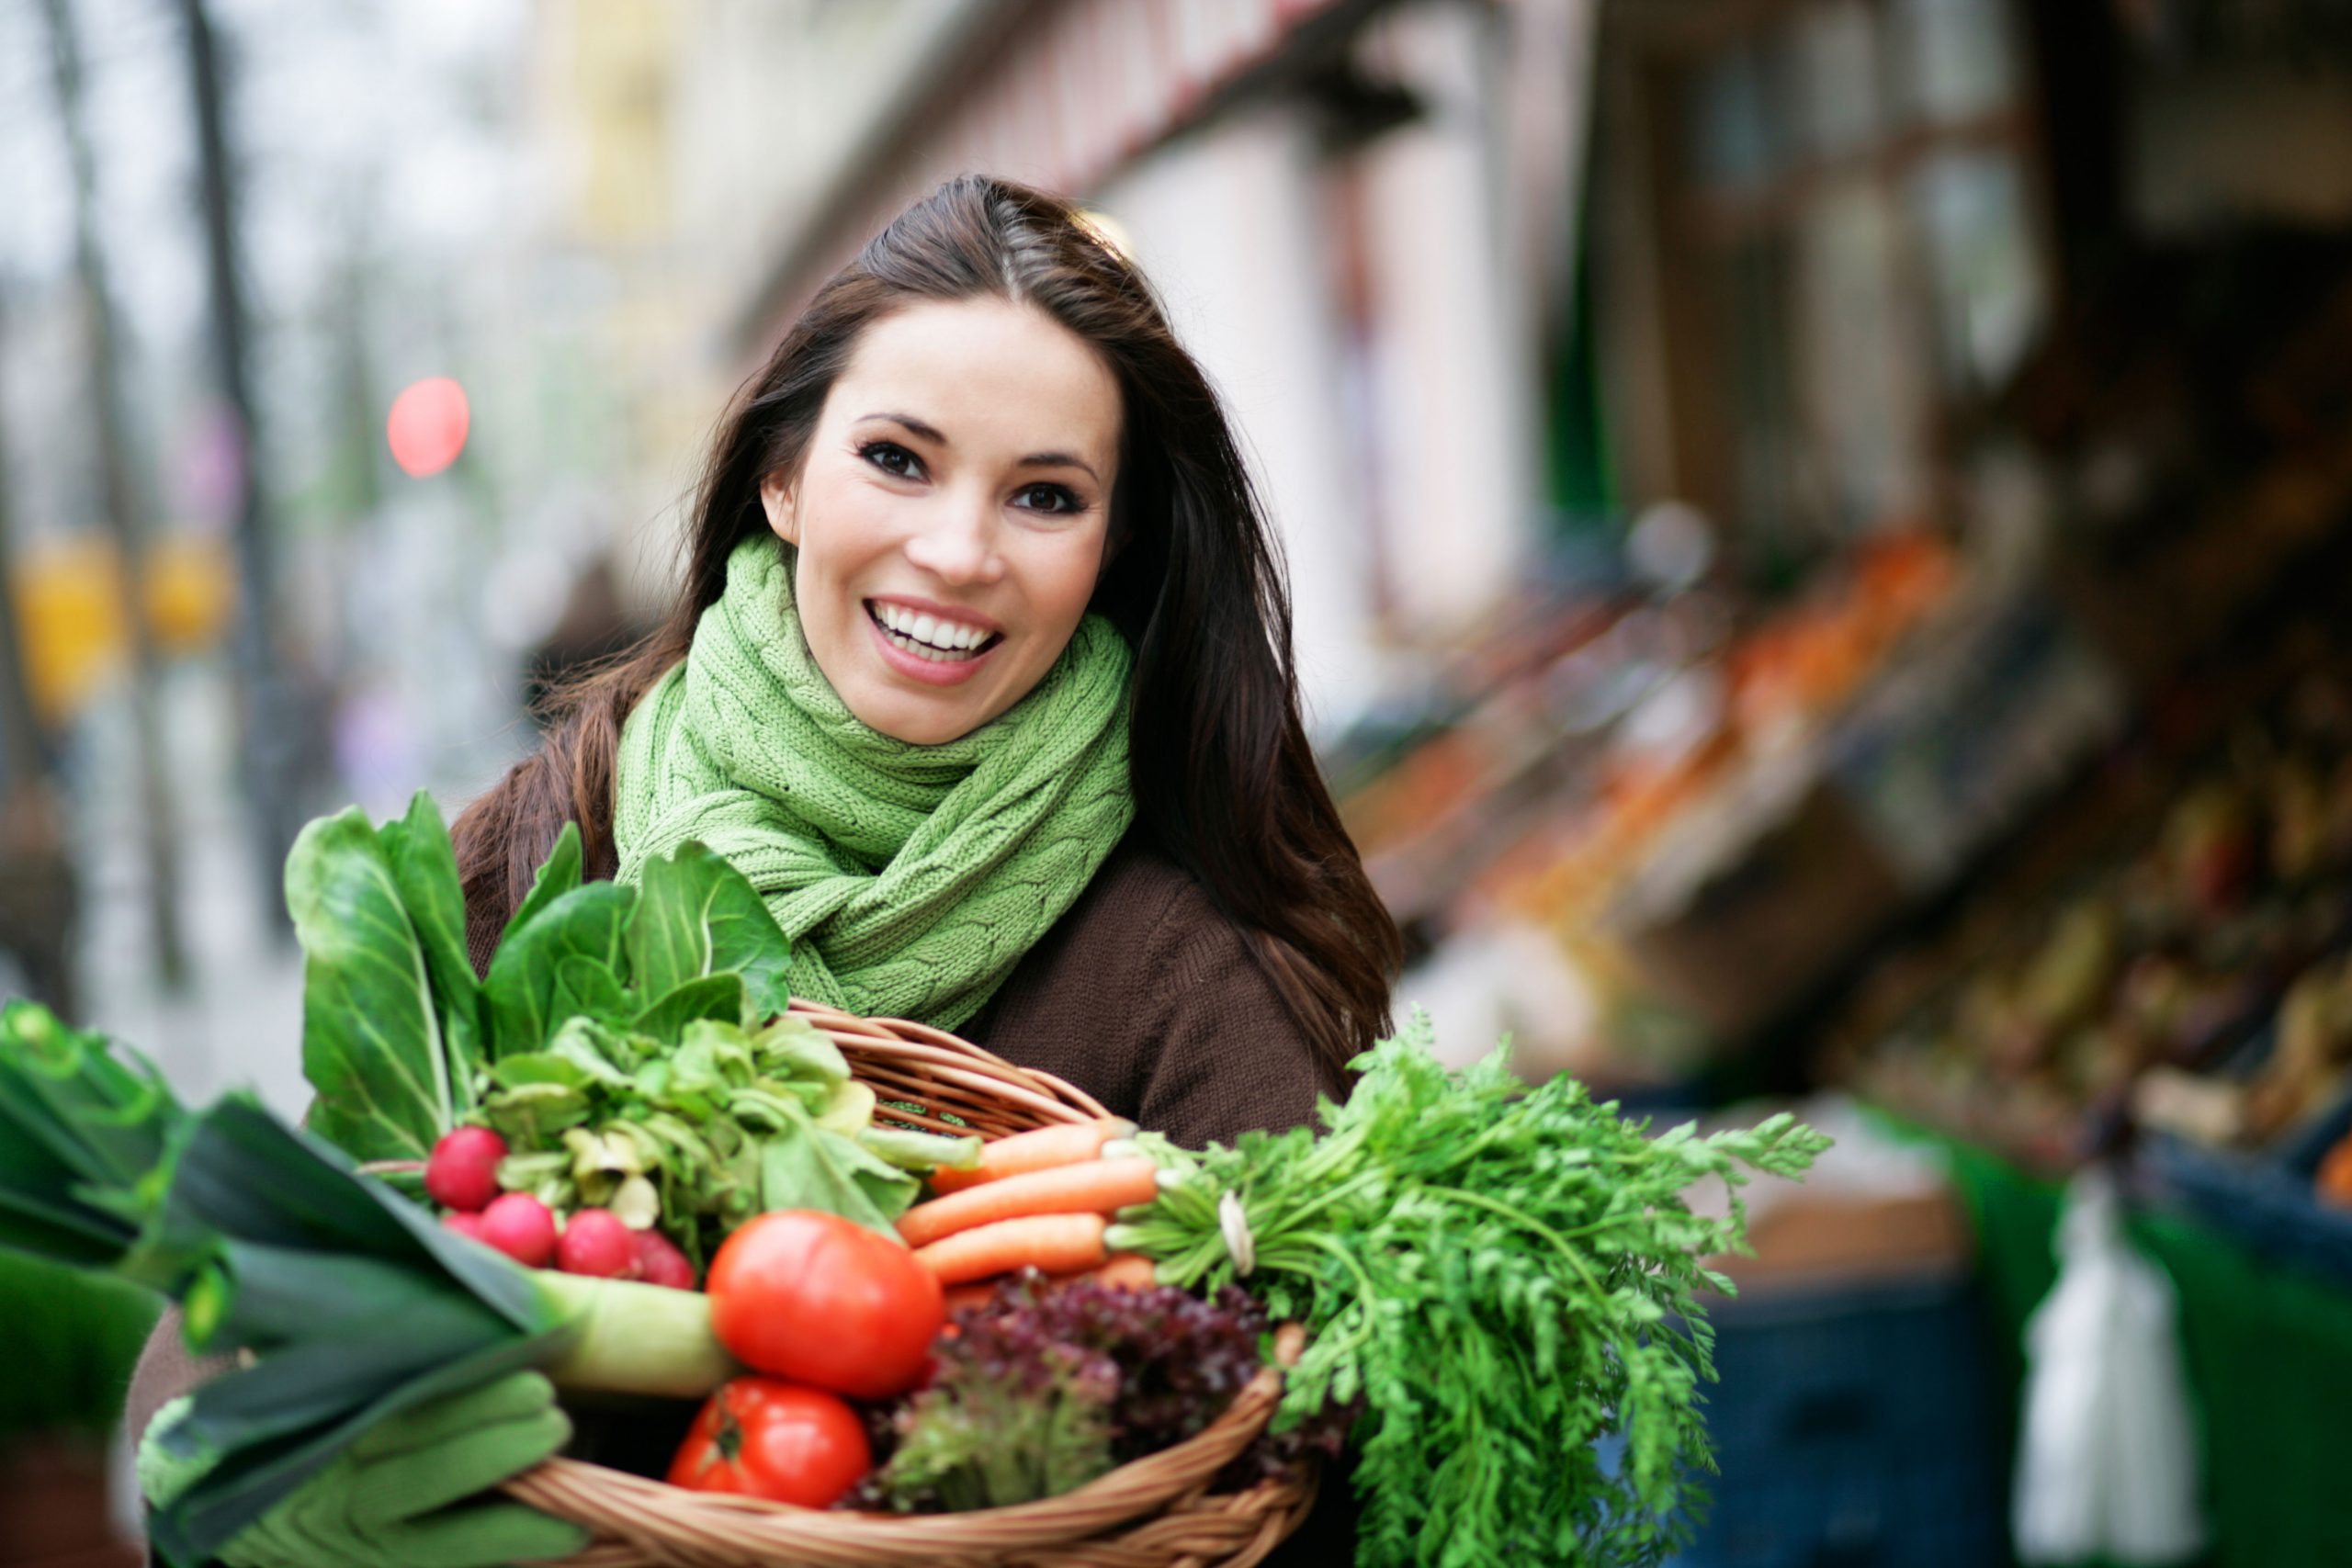 buying foods will keep you on a good path